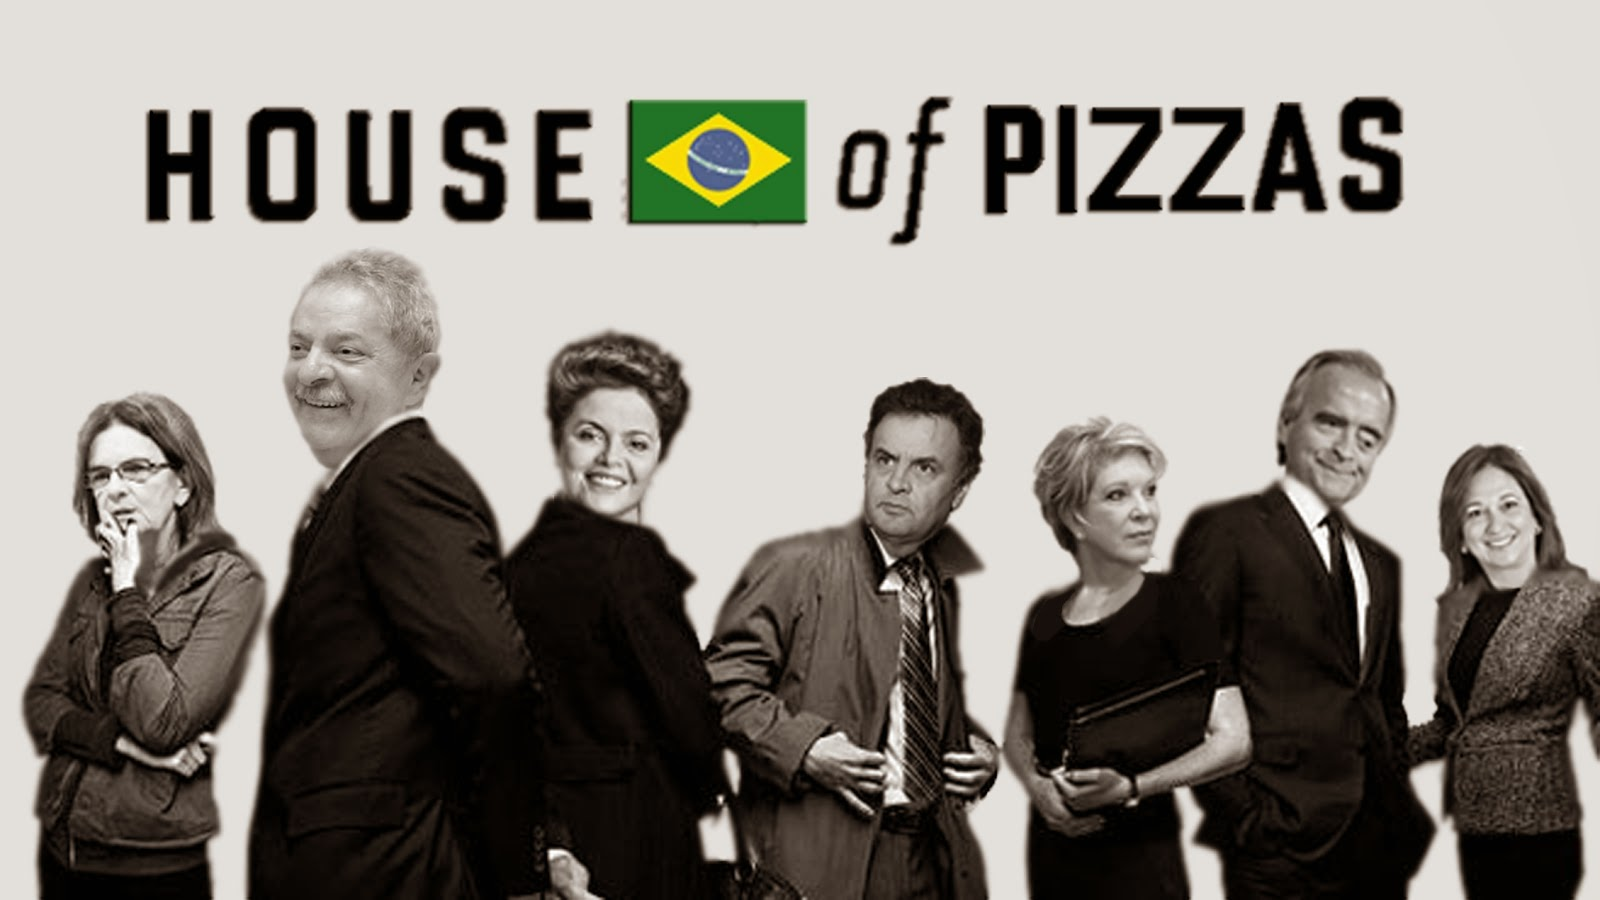 House of pizzas